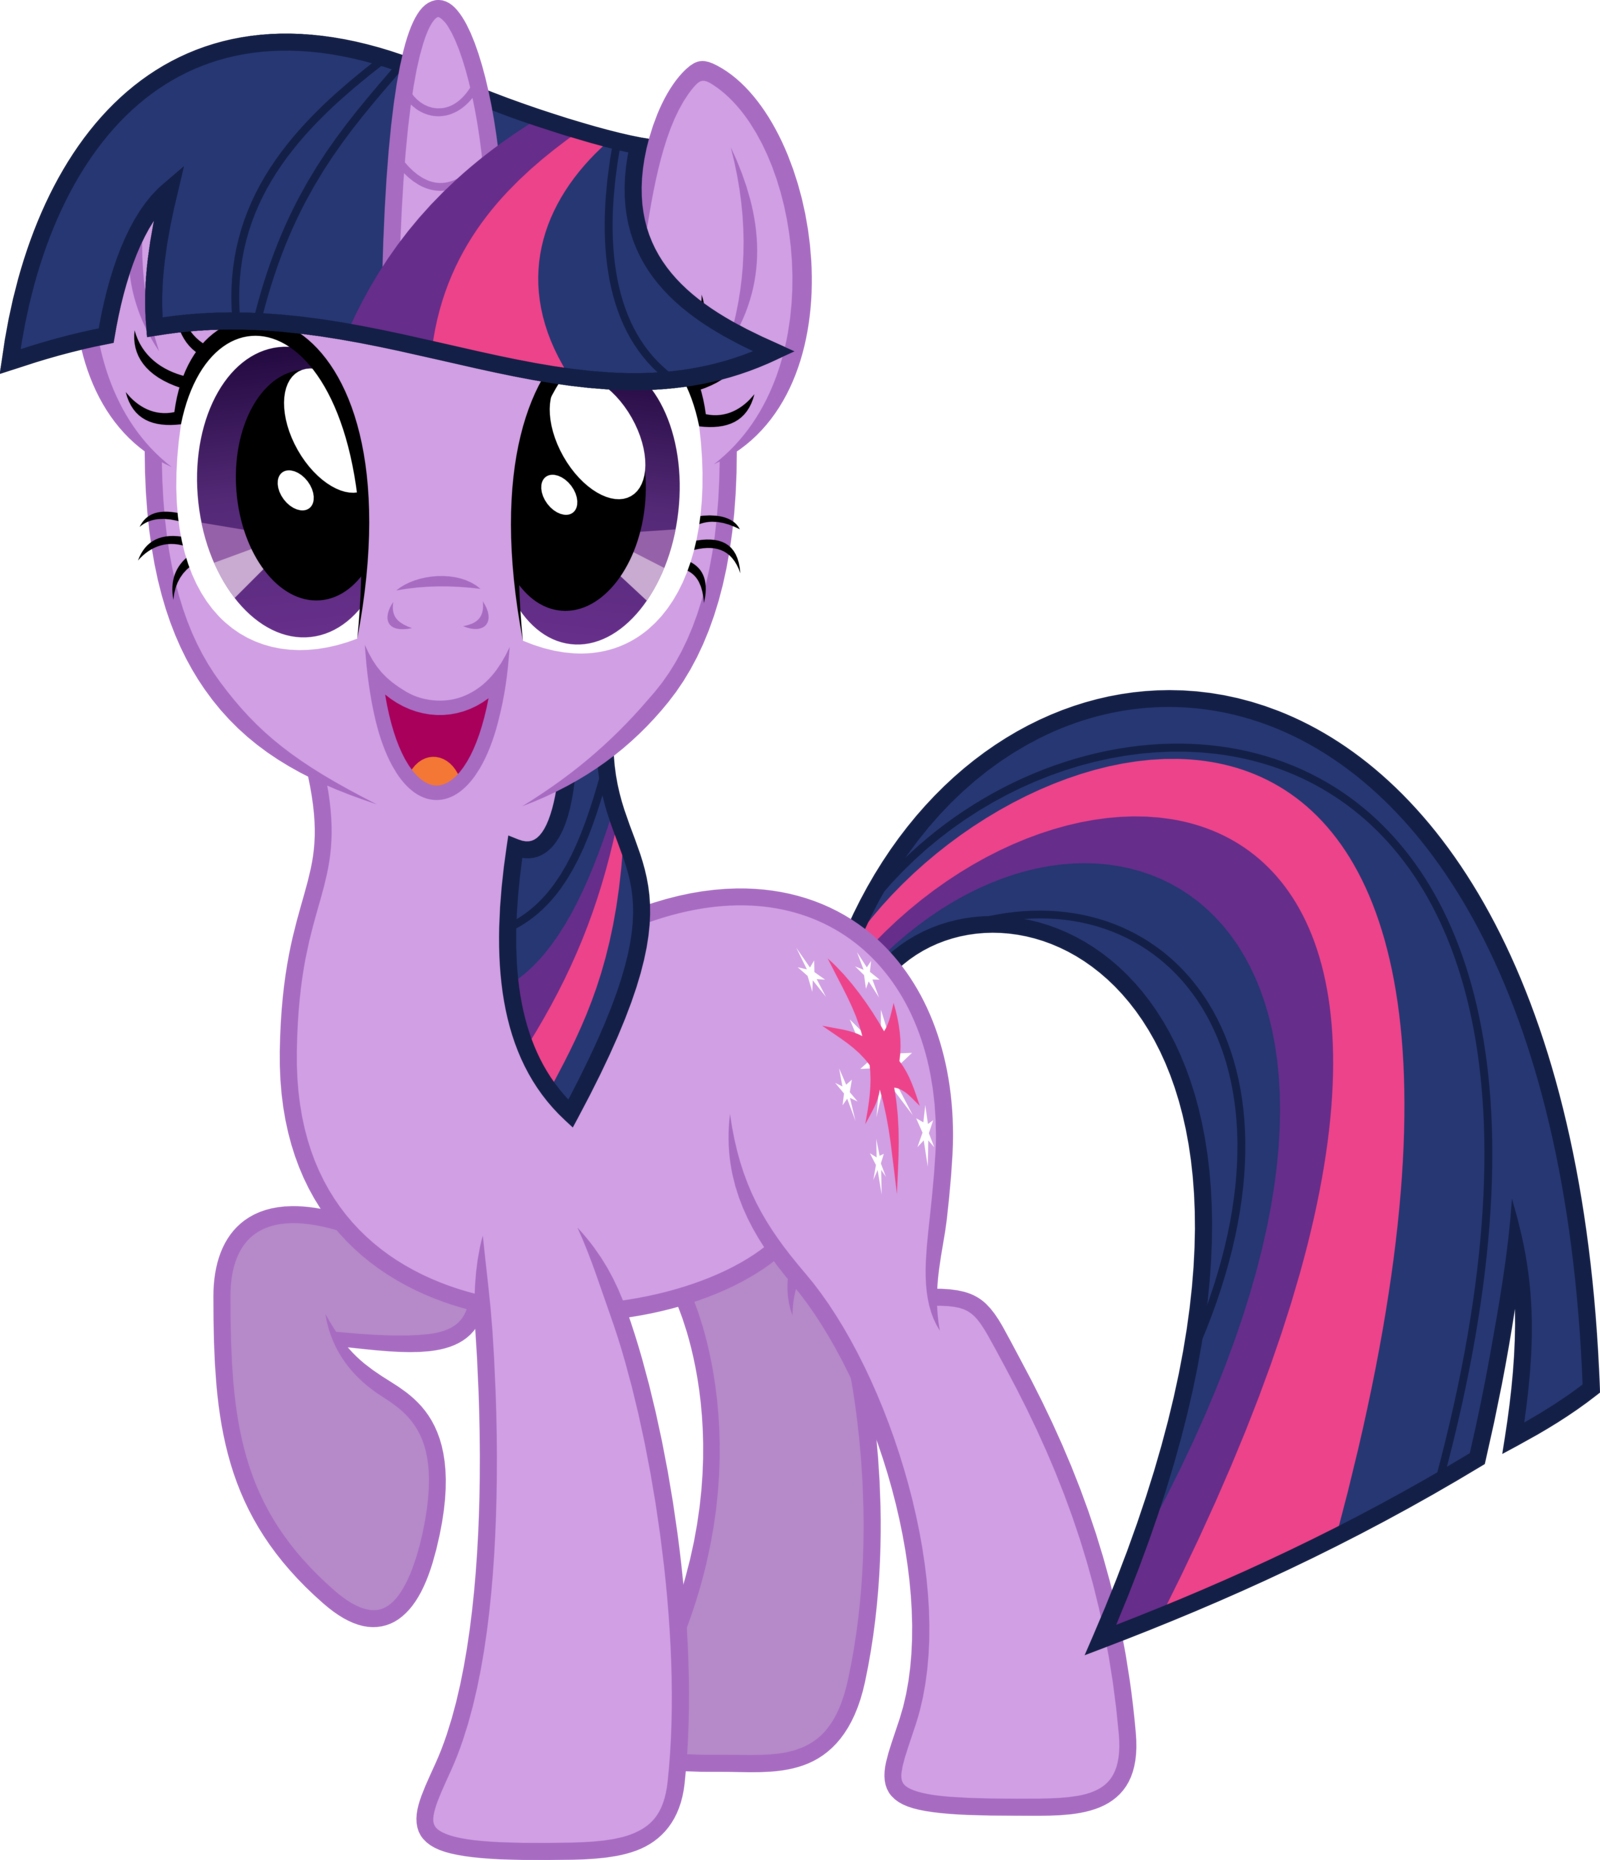 twilight sparkle rarity little pony png #28032